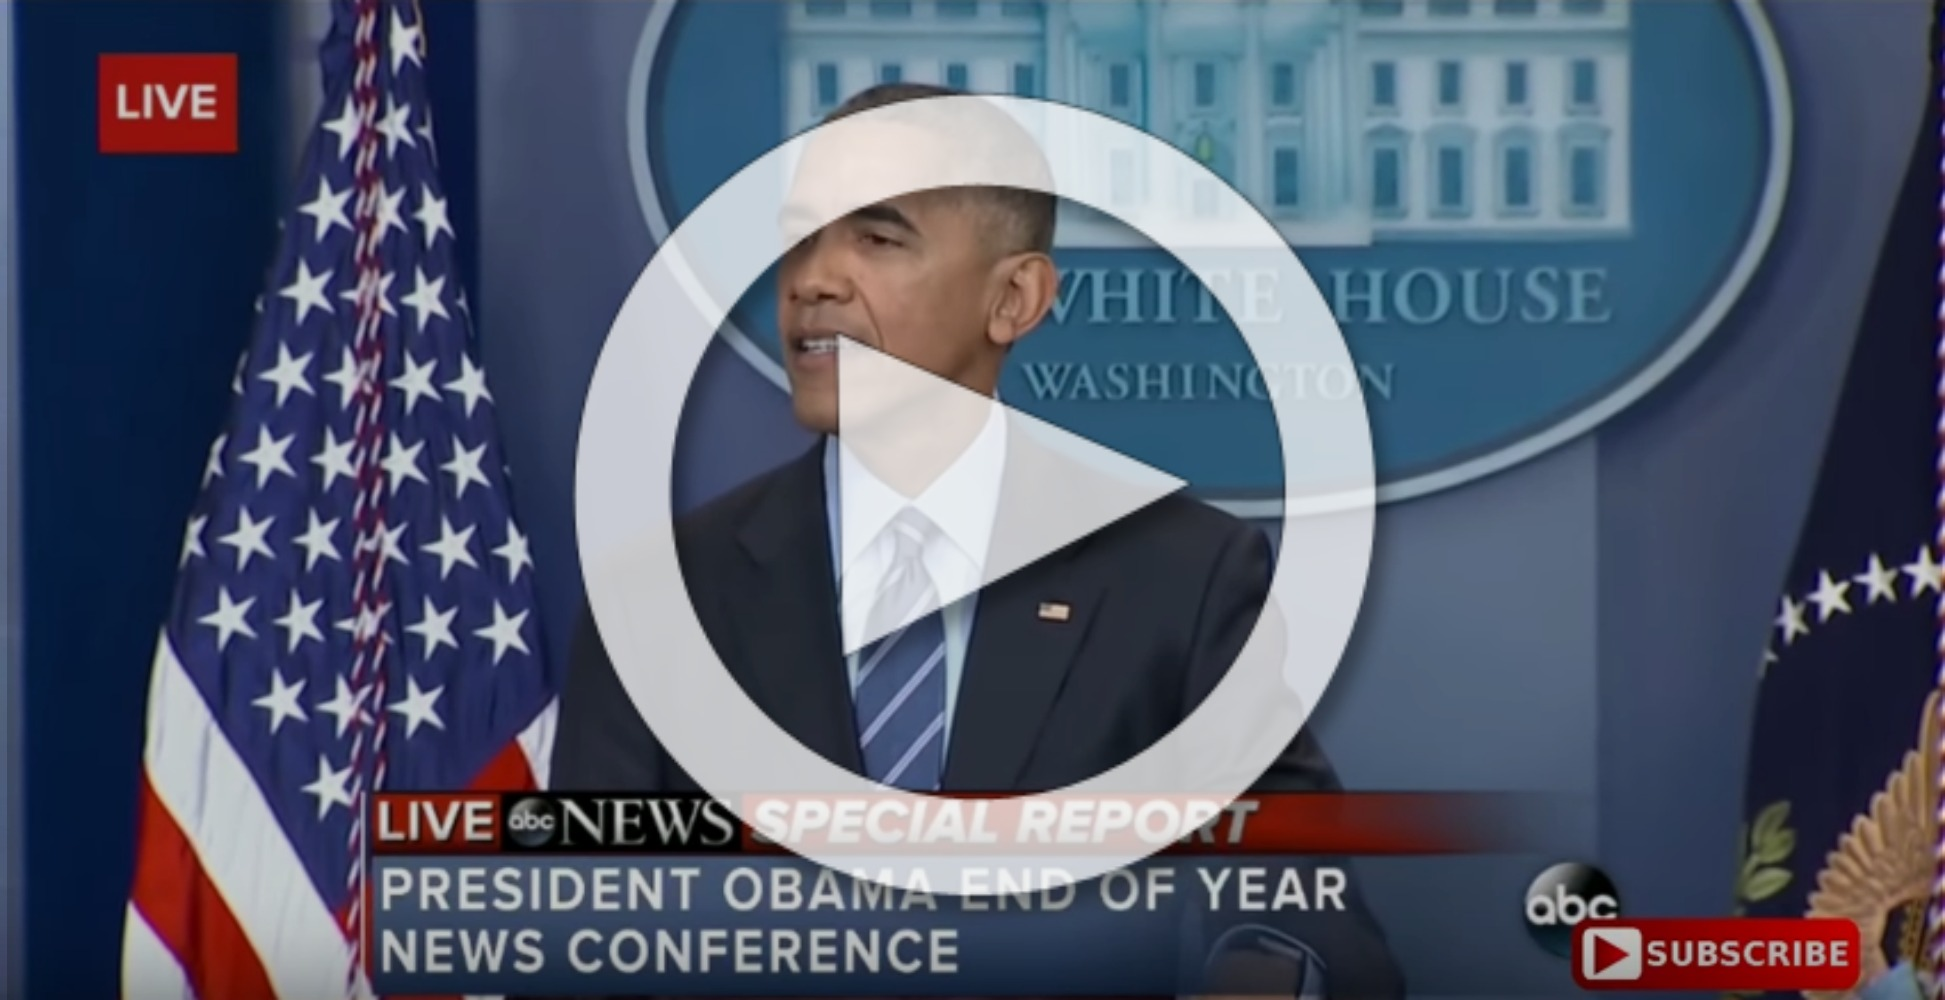 President Obama speech December 16 Russia, Trump, election tampering